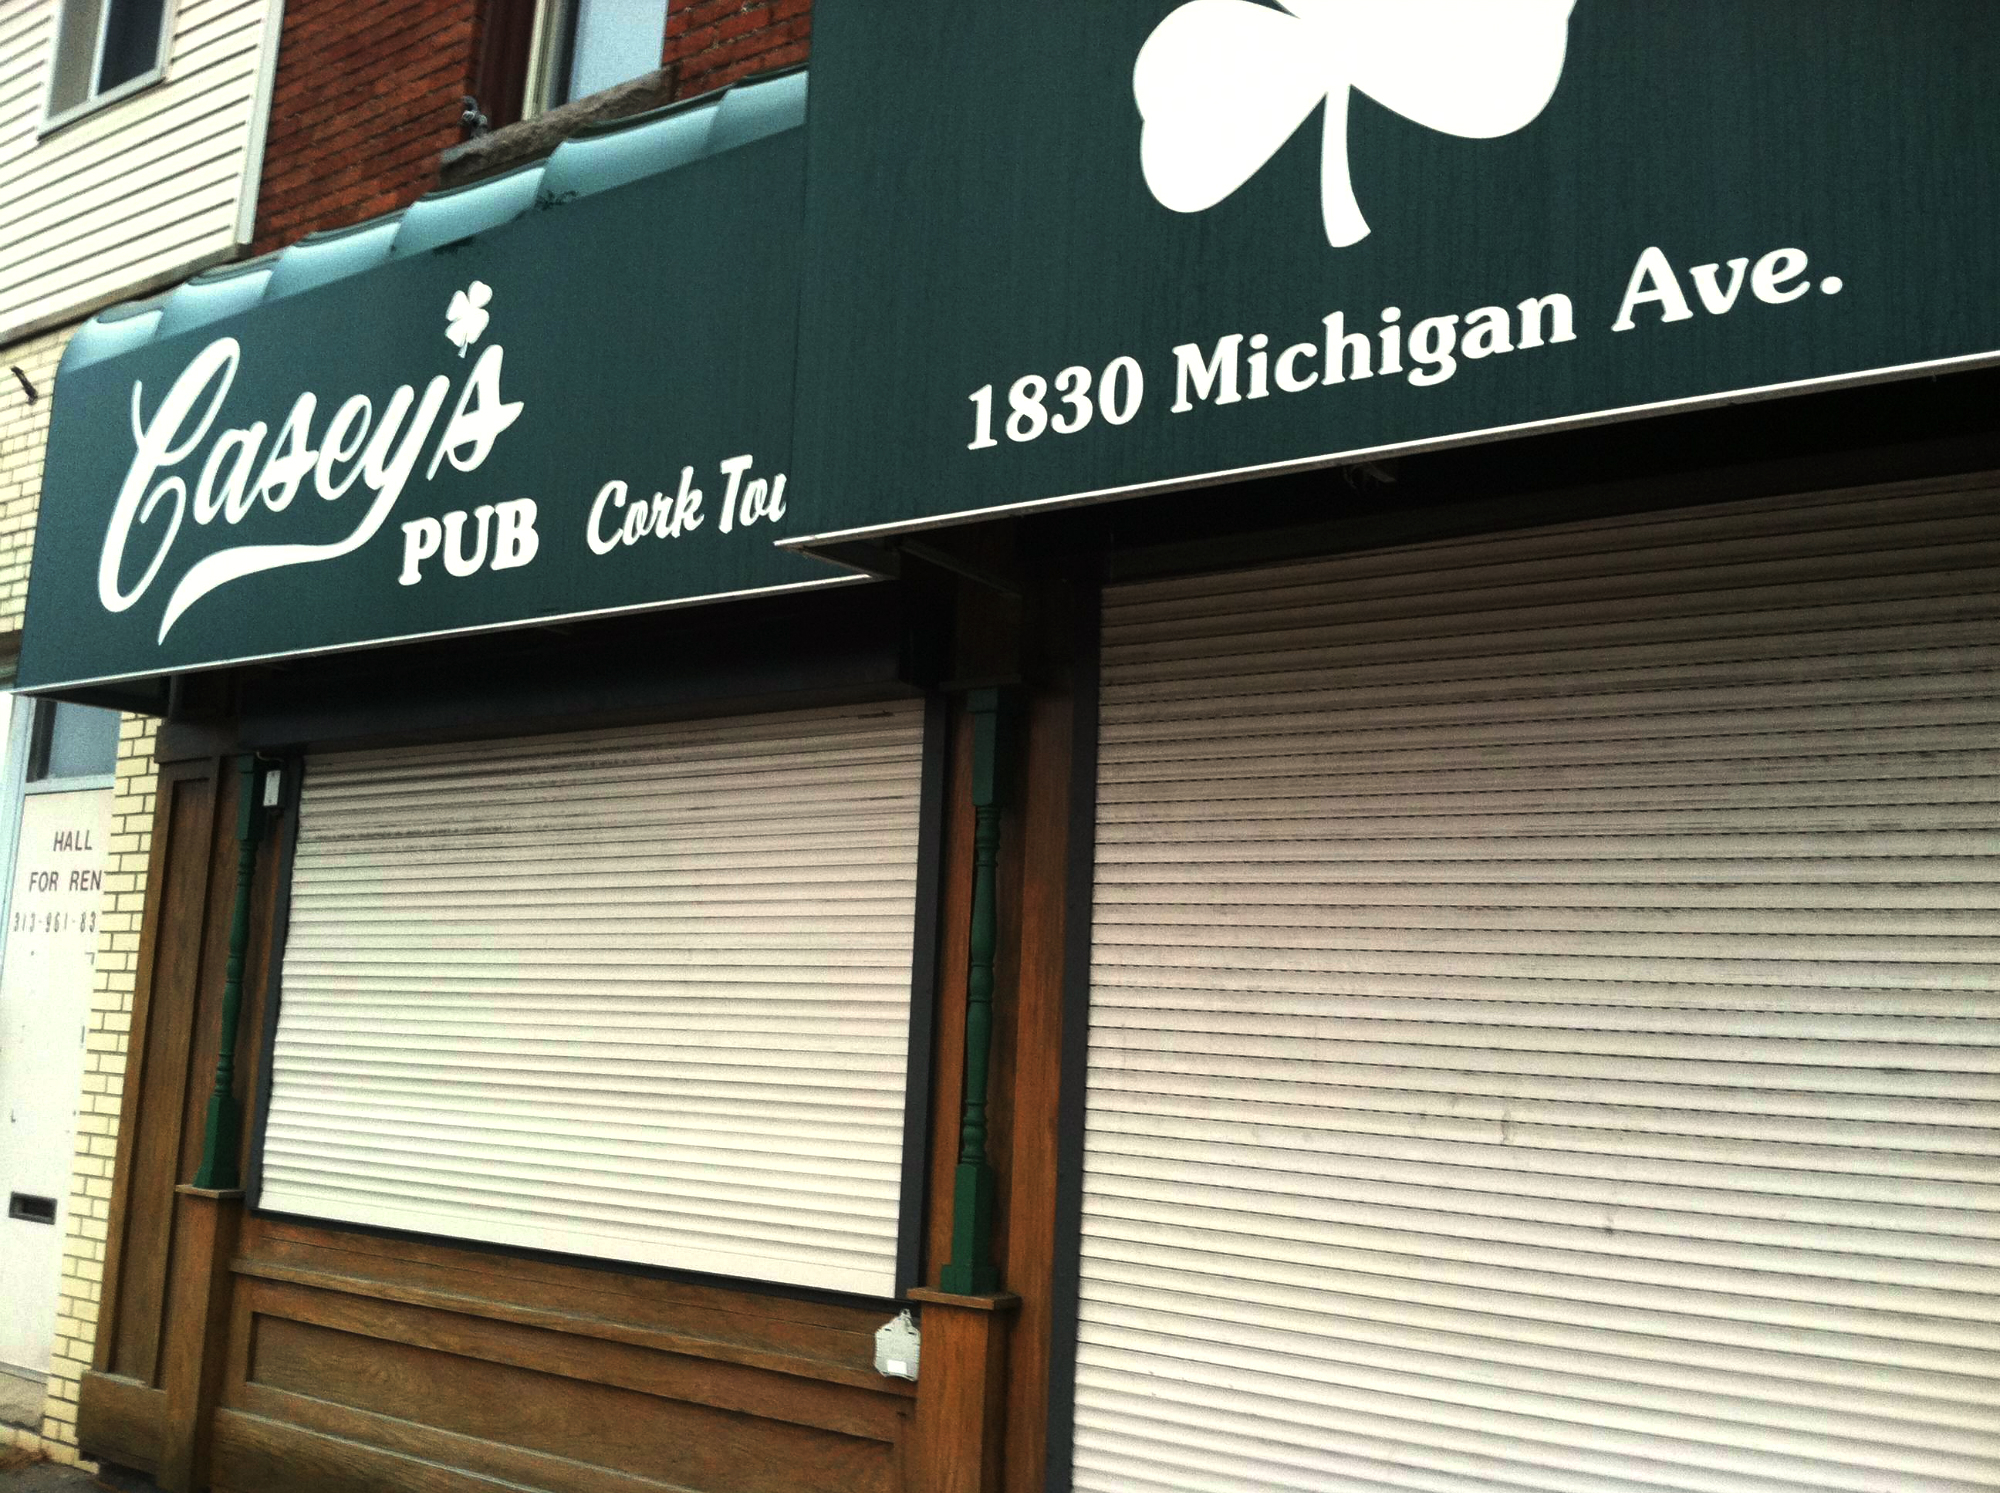 Casey's pub appeared to be shutter during business hours on January 3.